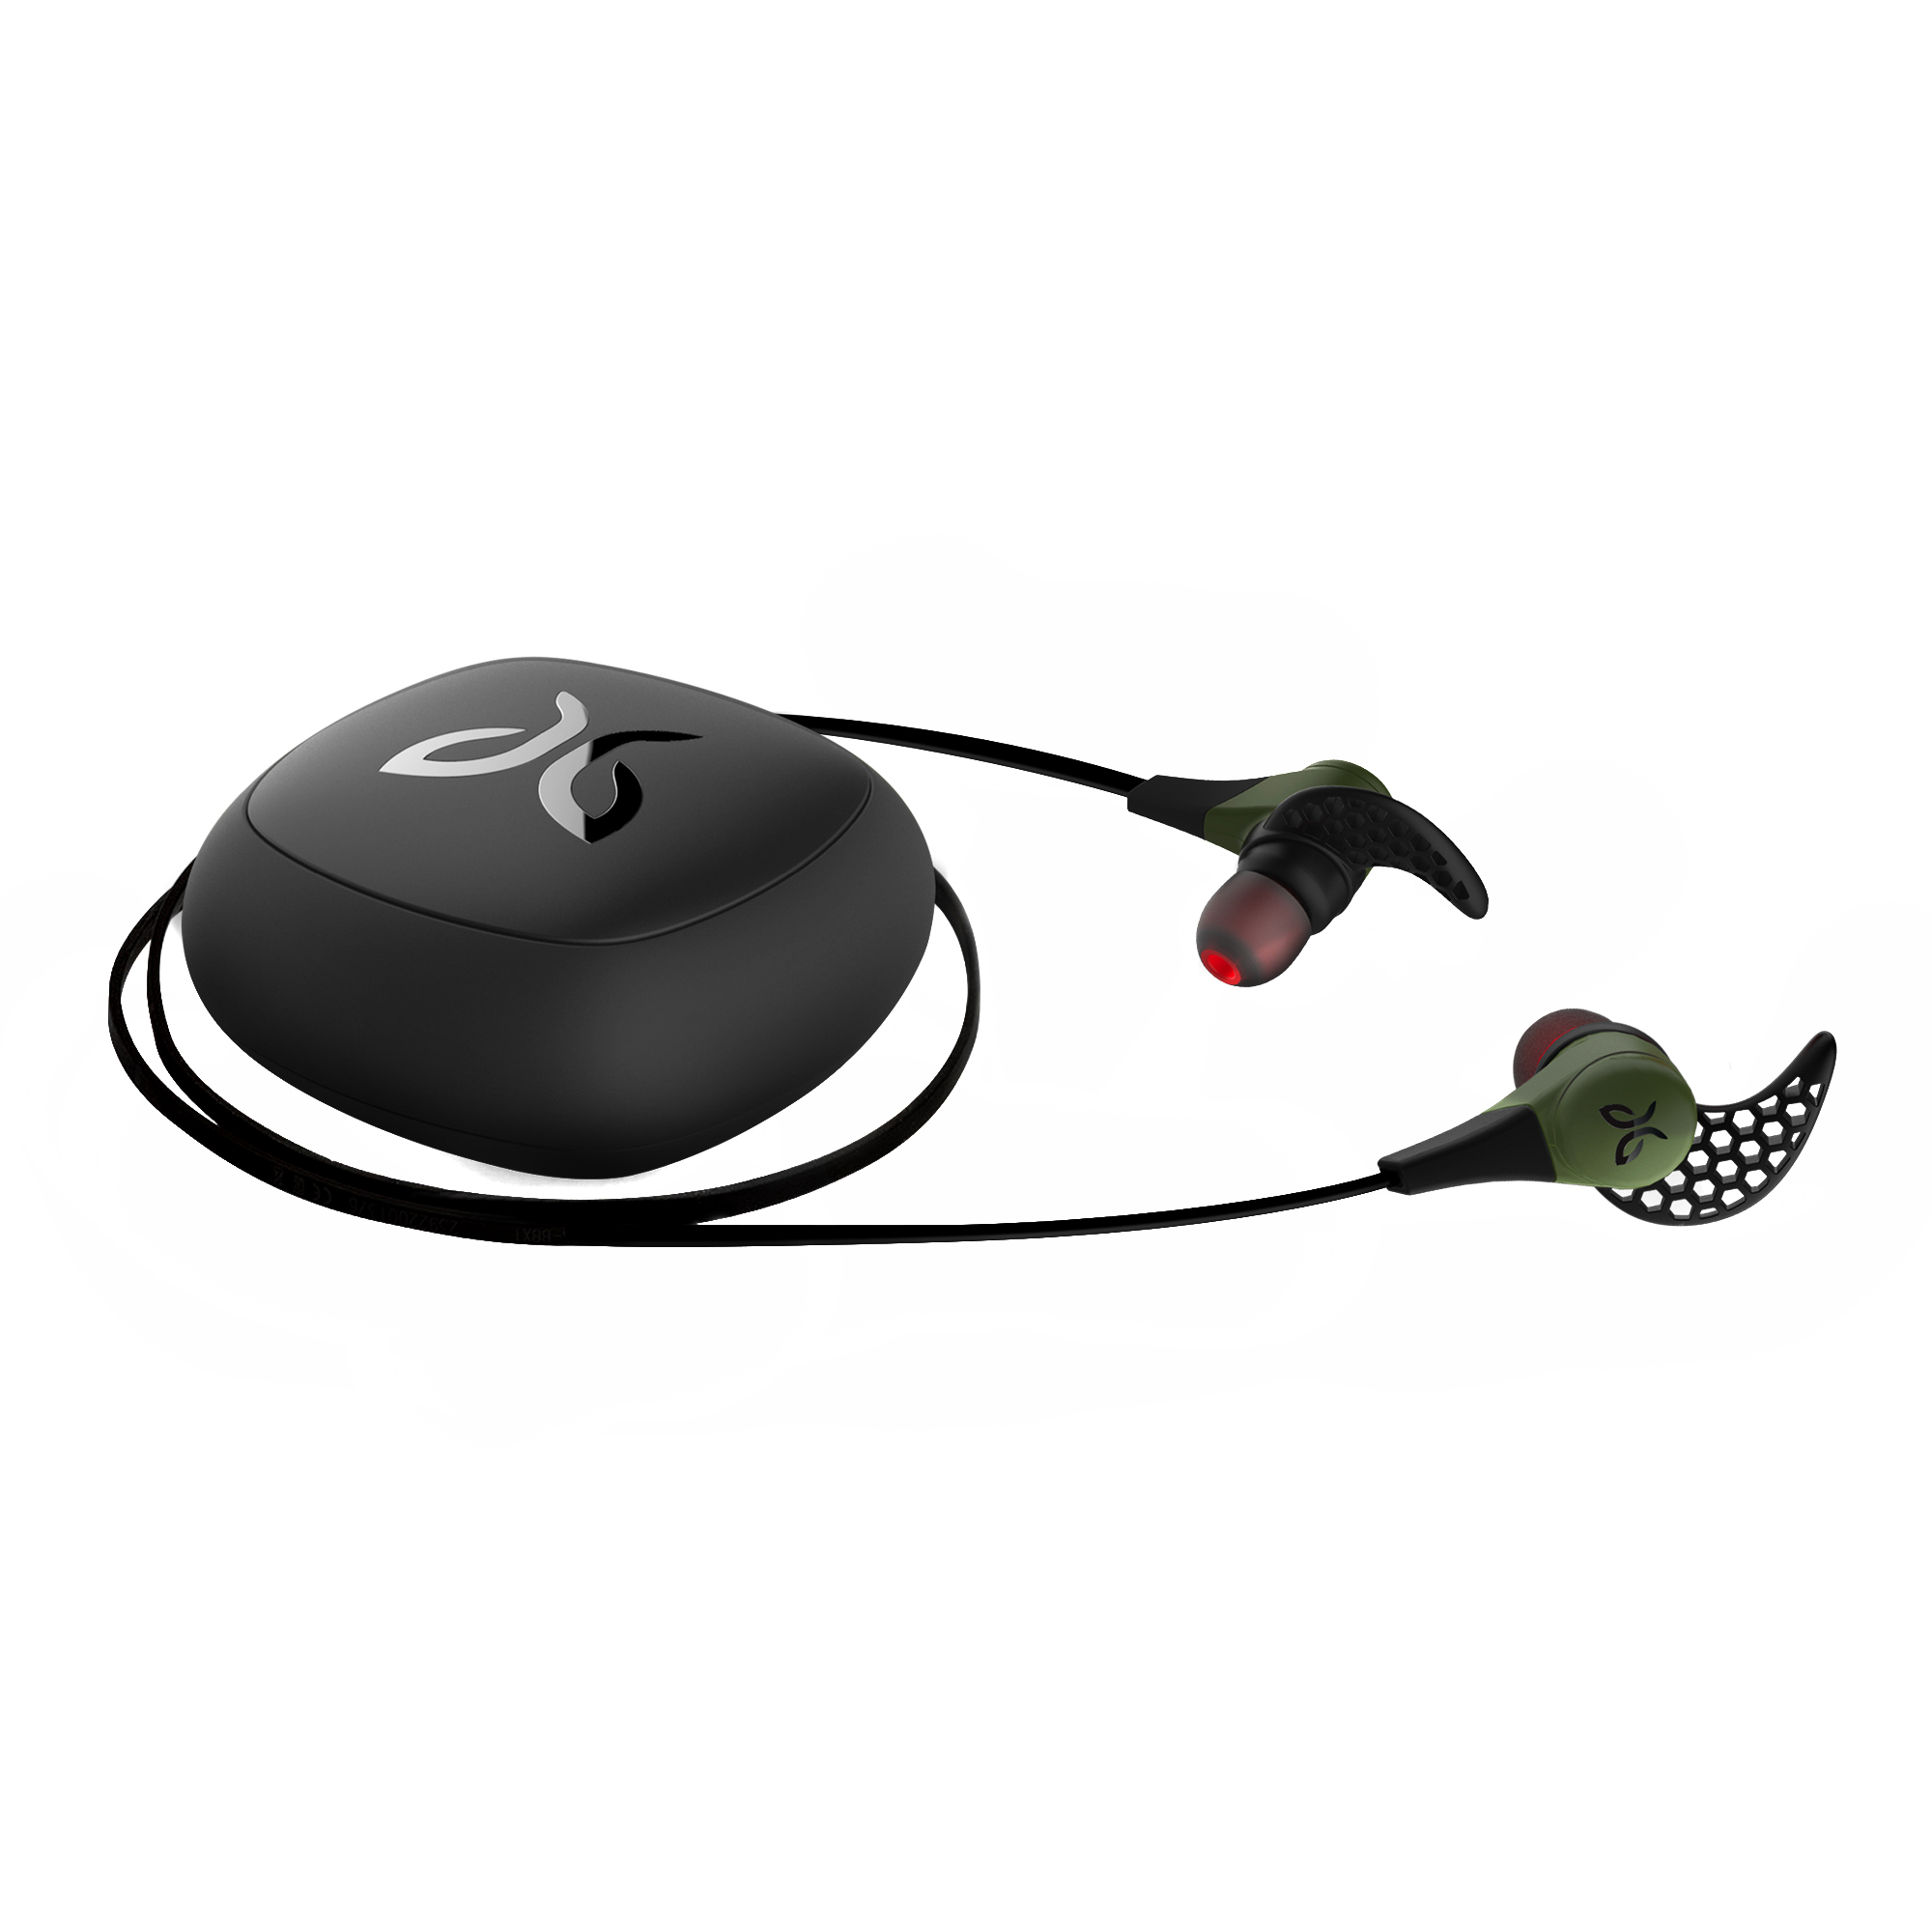 Jaybird X2 Premium Bluetooth Wireless Earbuds